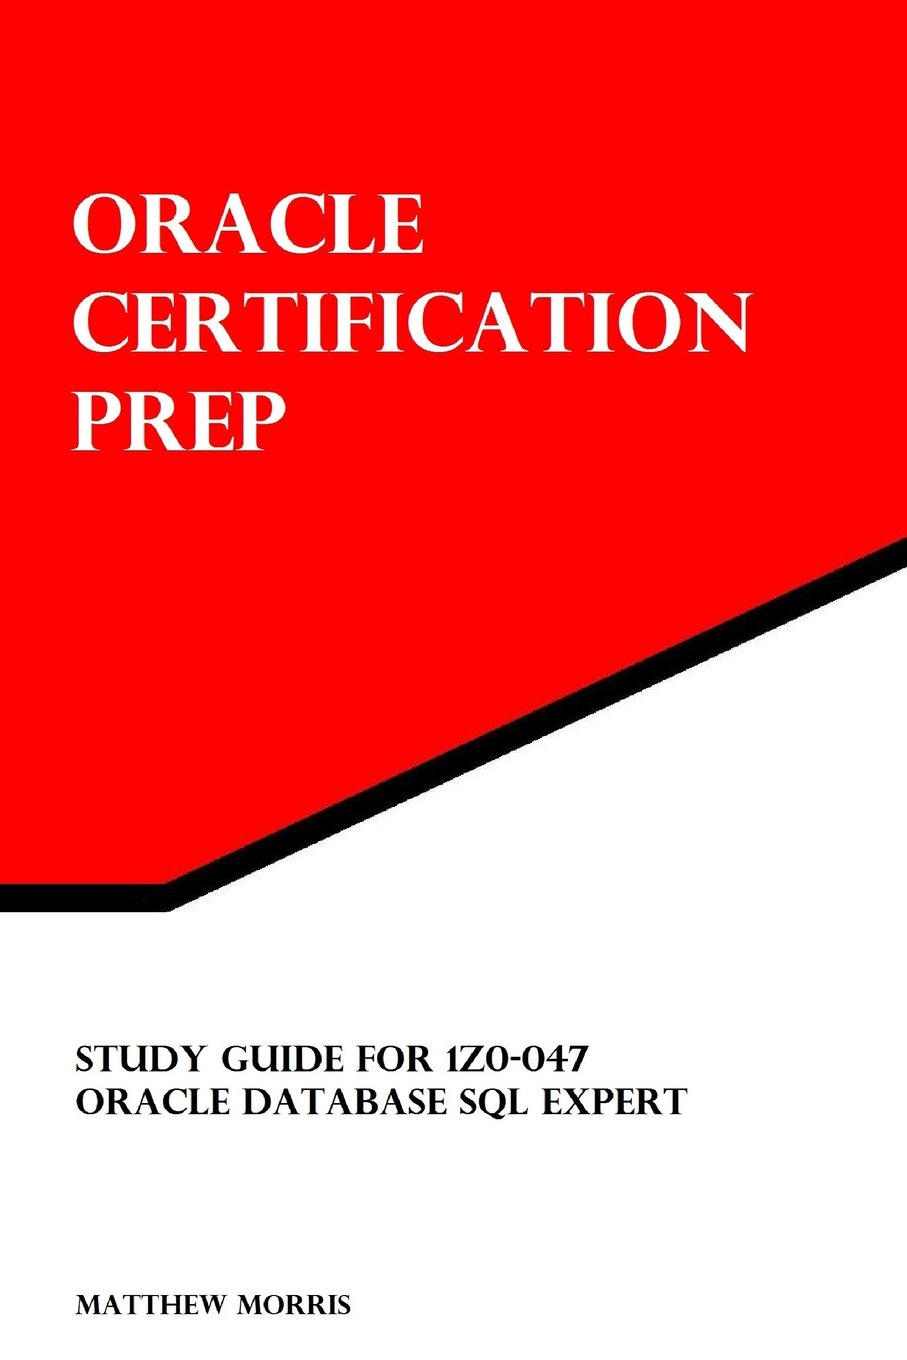 Study guide for 1z0 047 oracle database sql expert oracle study guide for 1z0 047 oracle database sql expert oracle certification prep matthew morris 9781475152432 amazon books xflitez Gallery